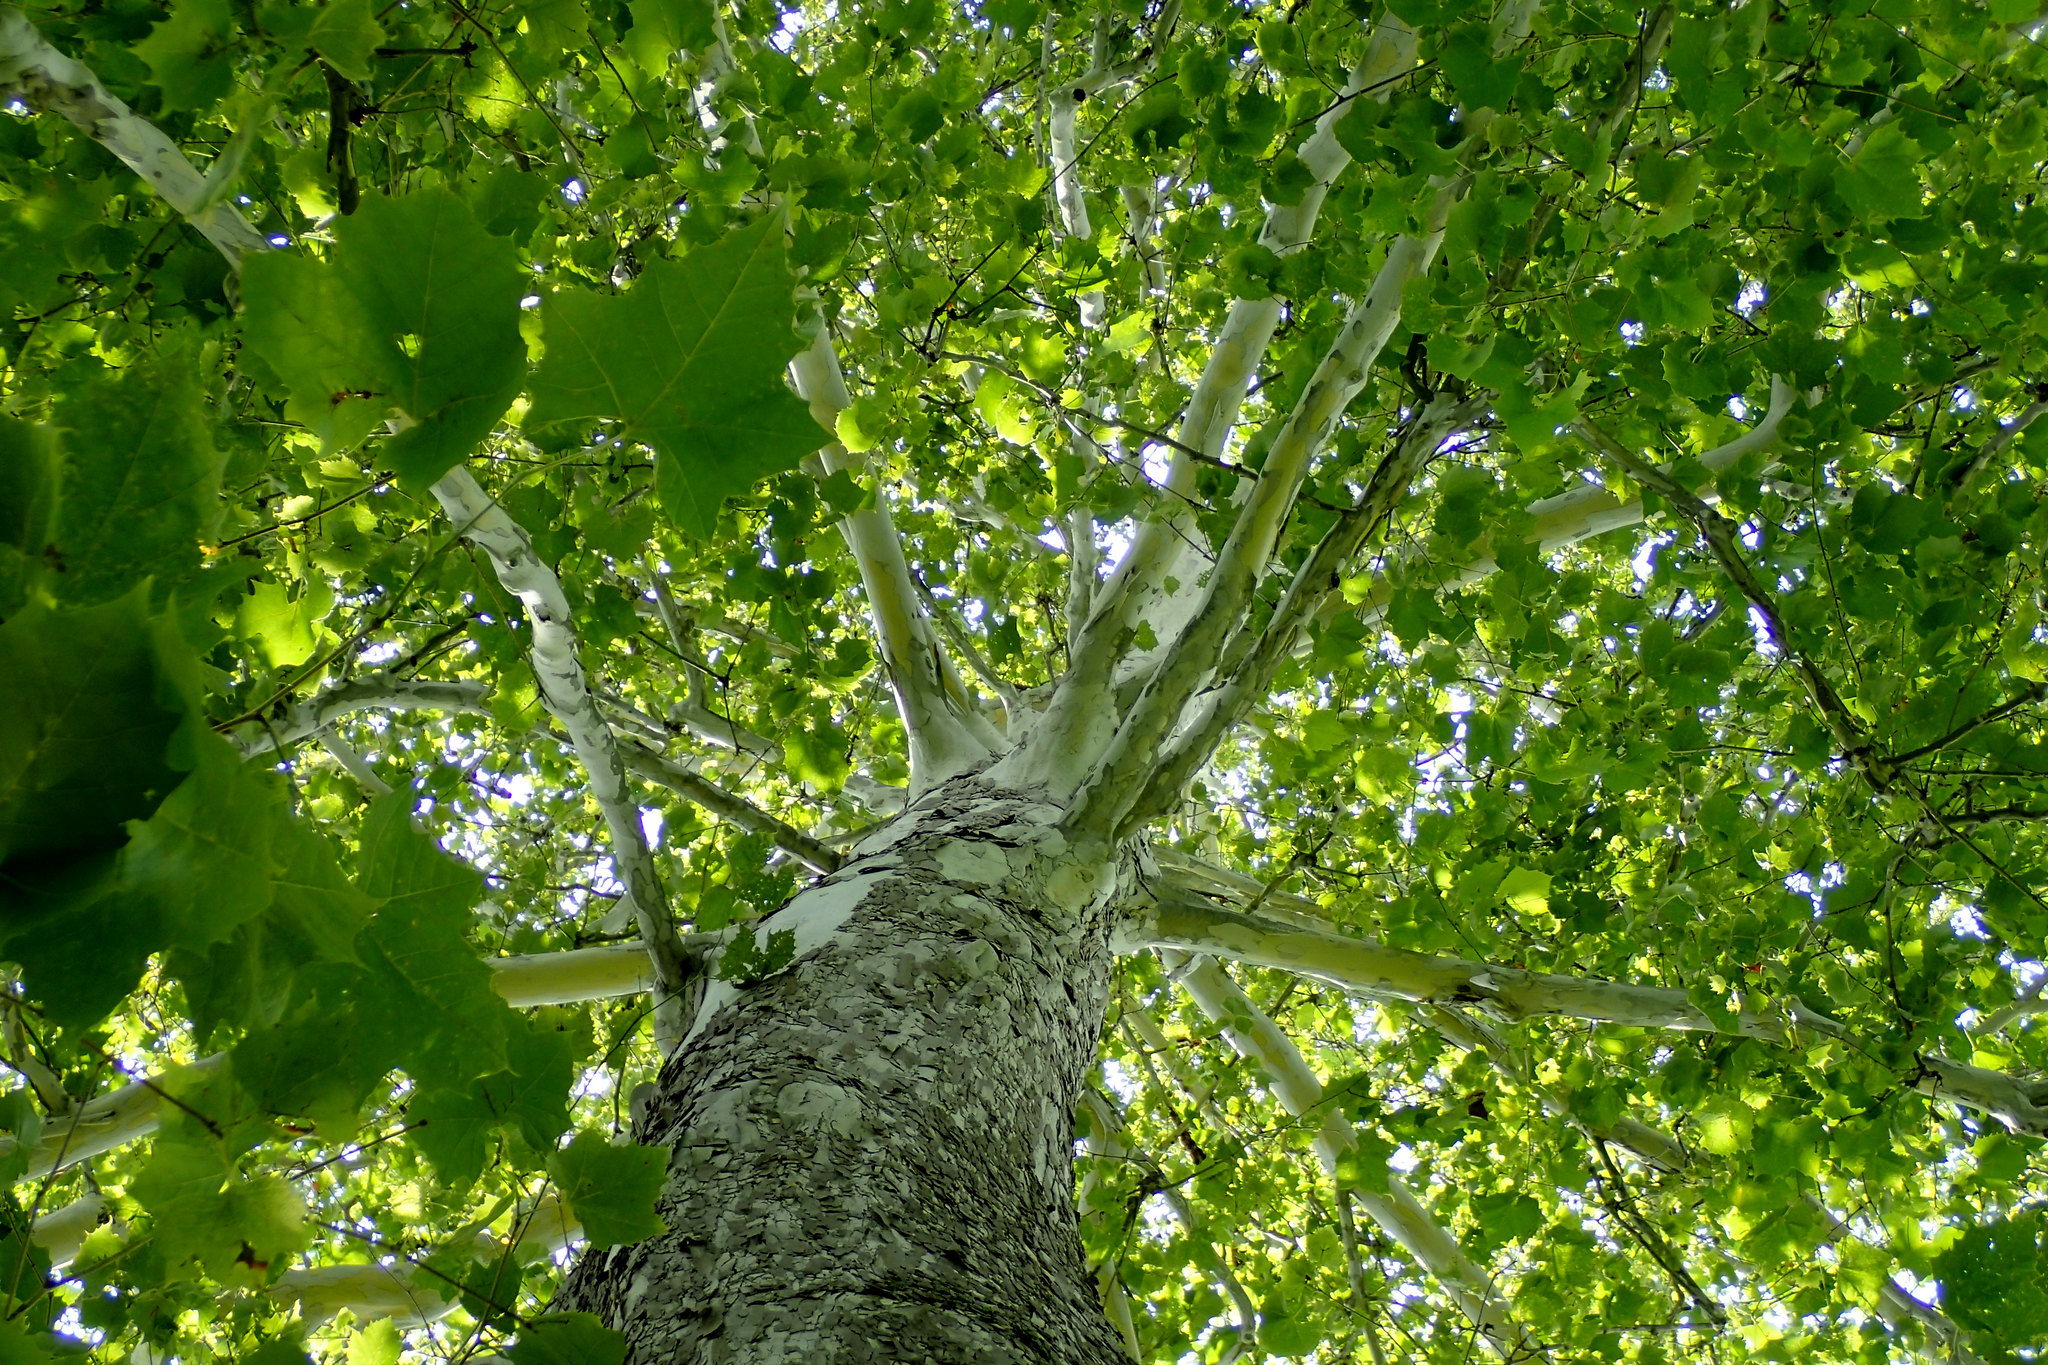 An American Sycamore (Platanus occidentalis) shows its expansive tree canopy coverage